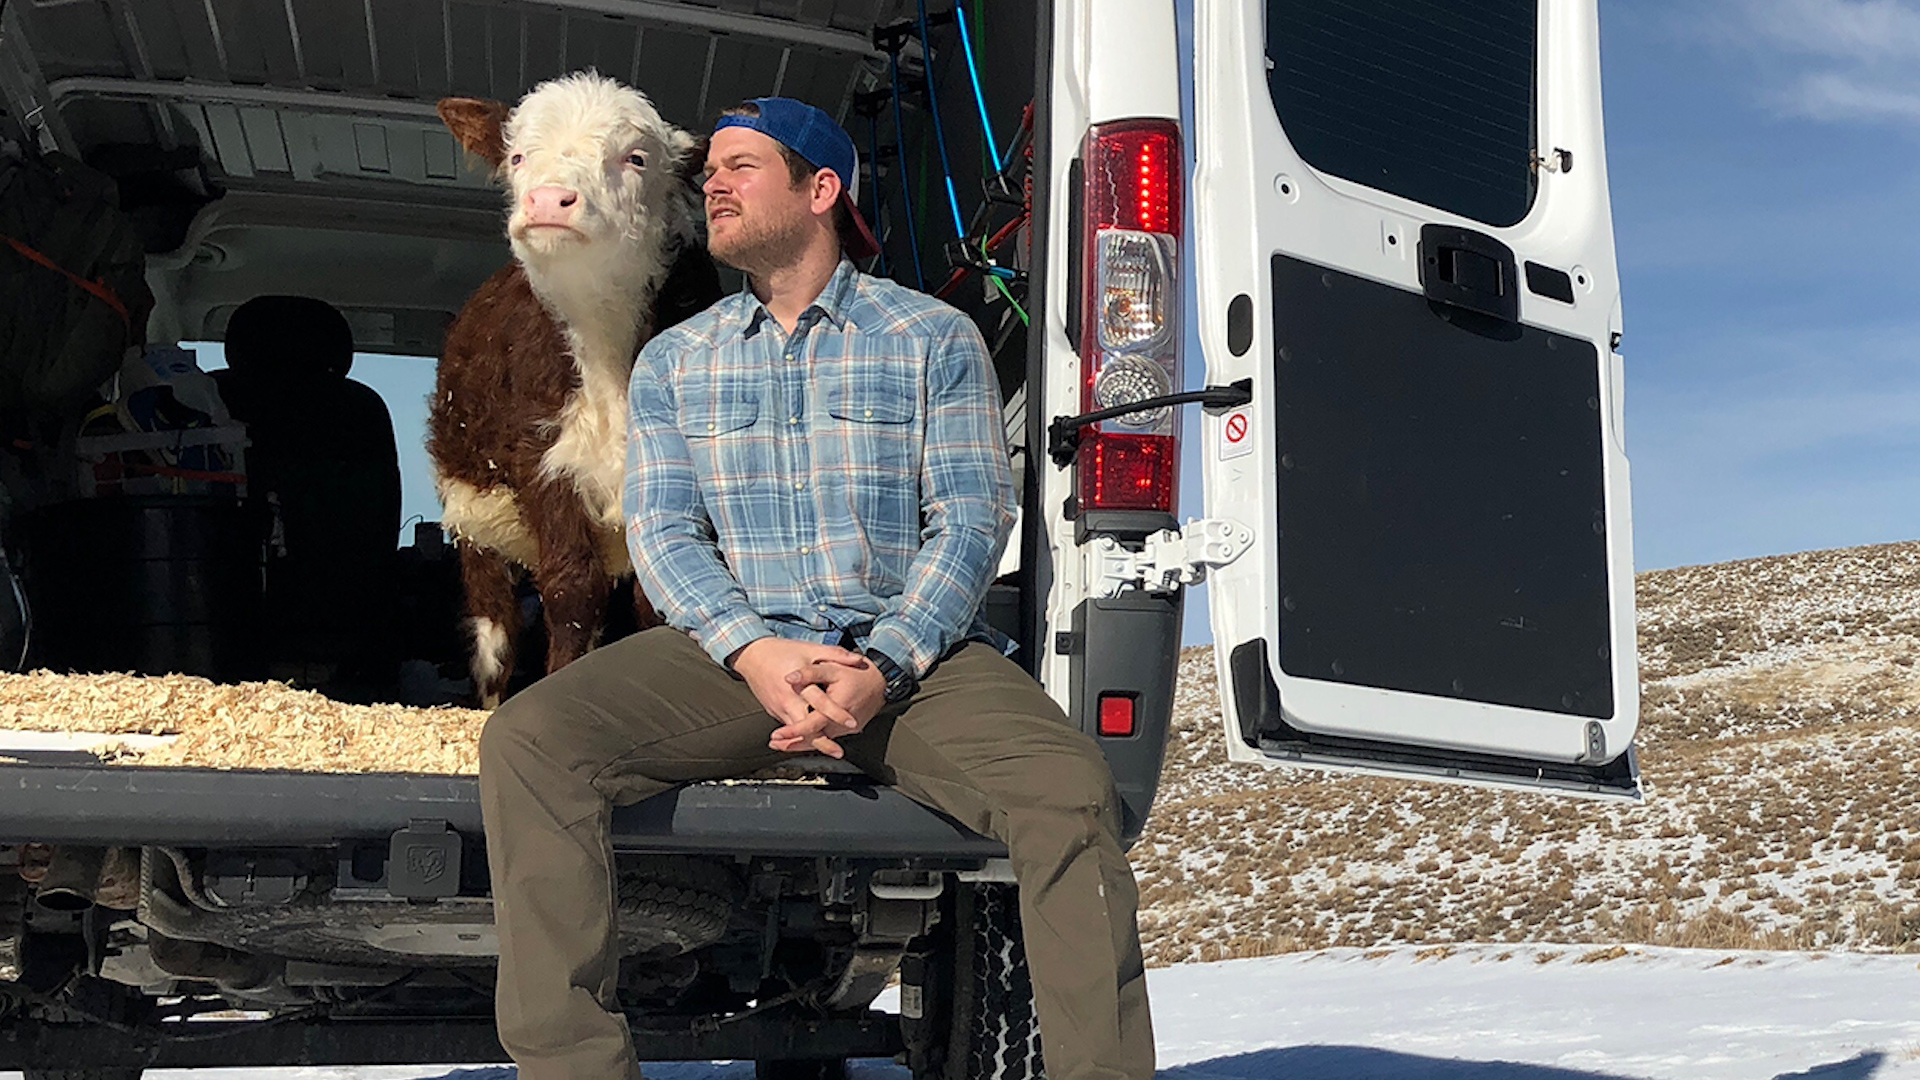 Guy Drives Van Across The U.S. With A Cow